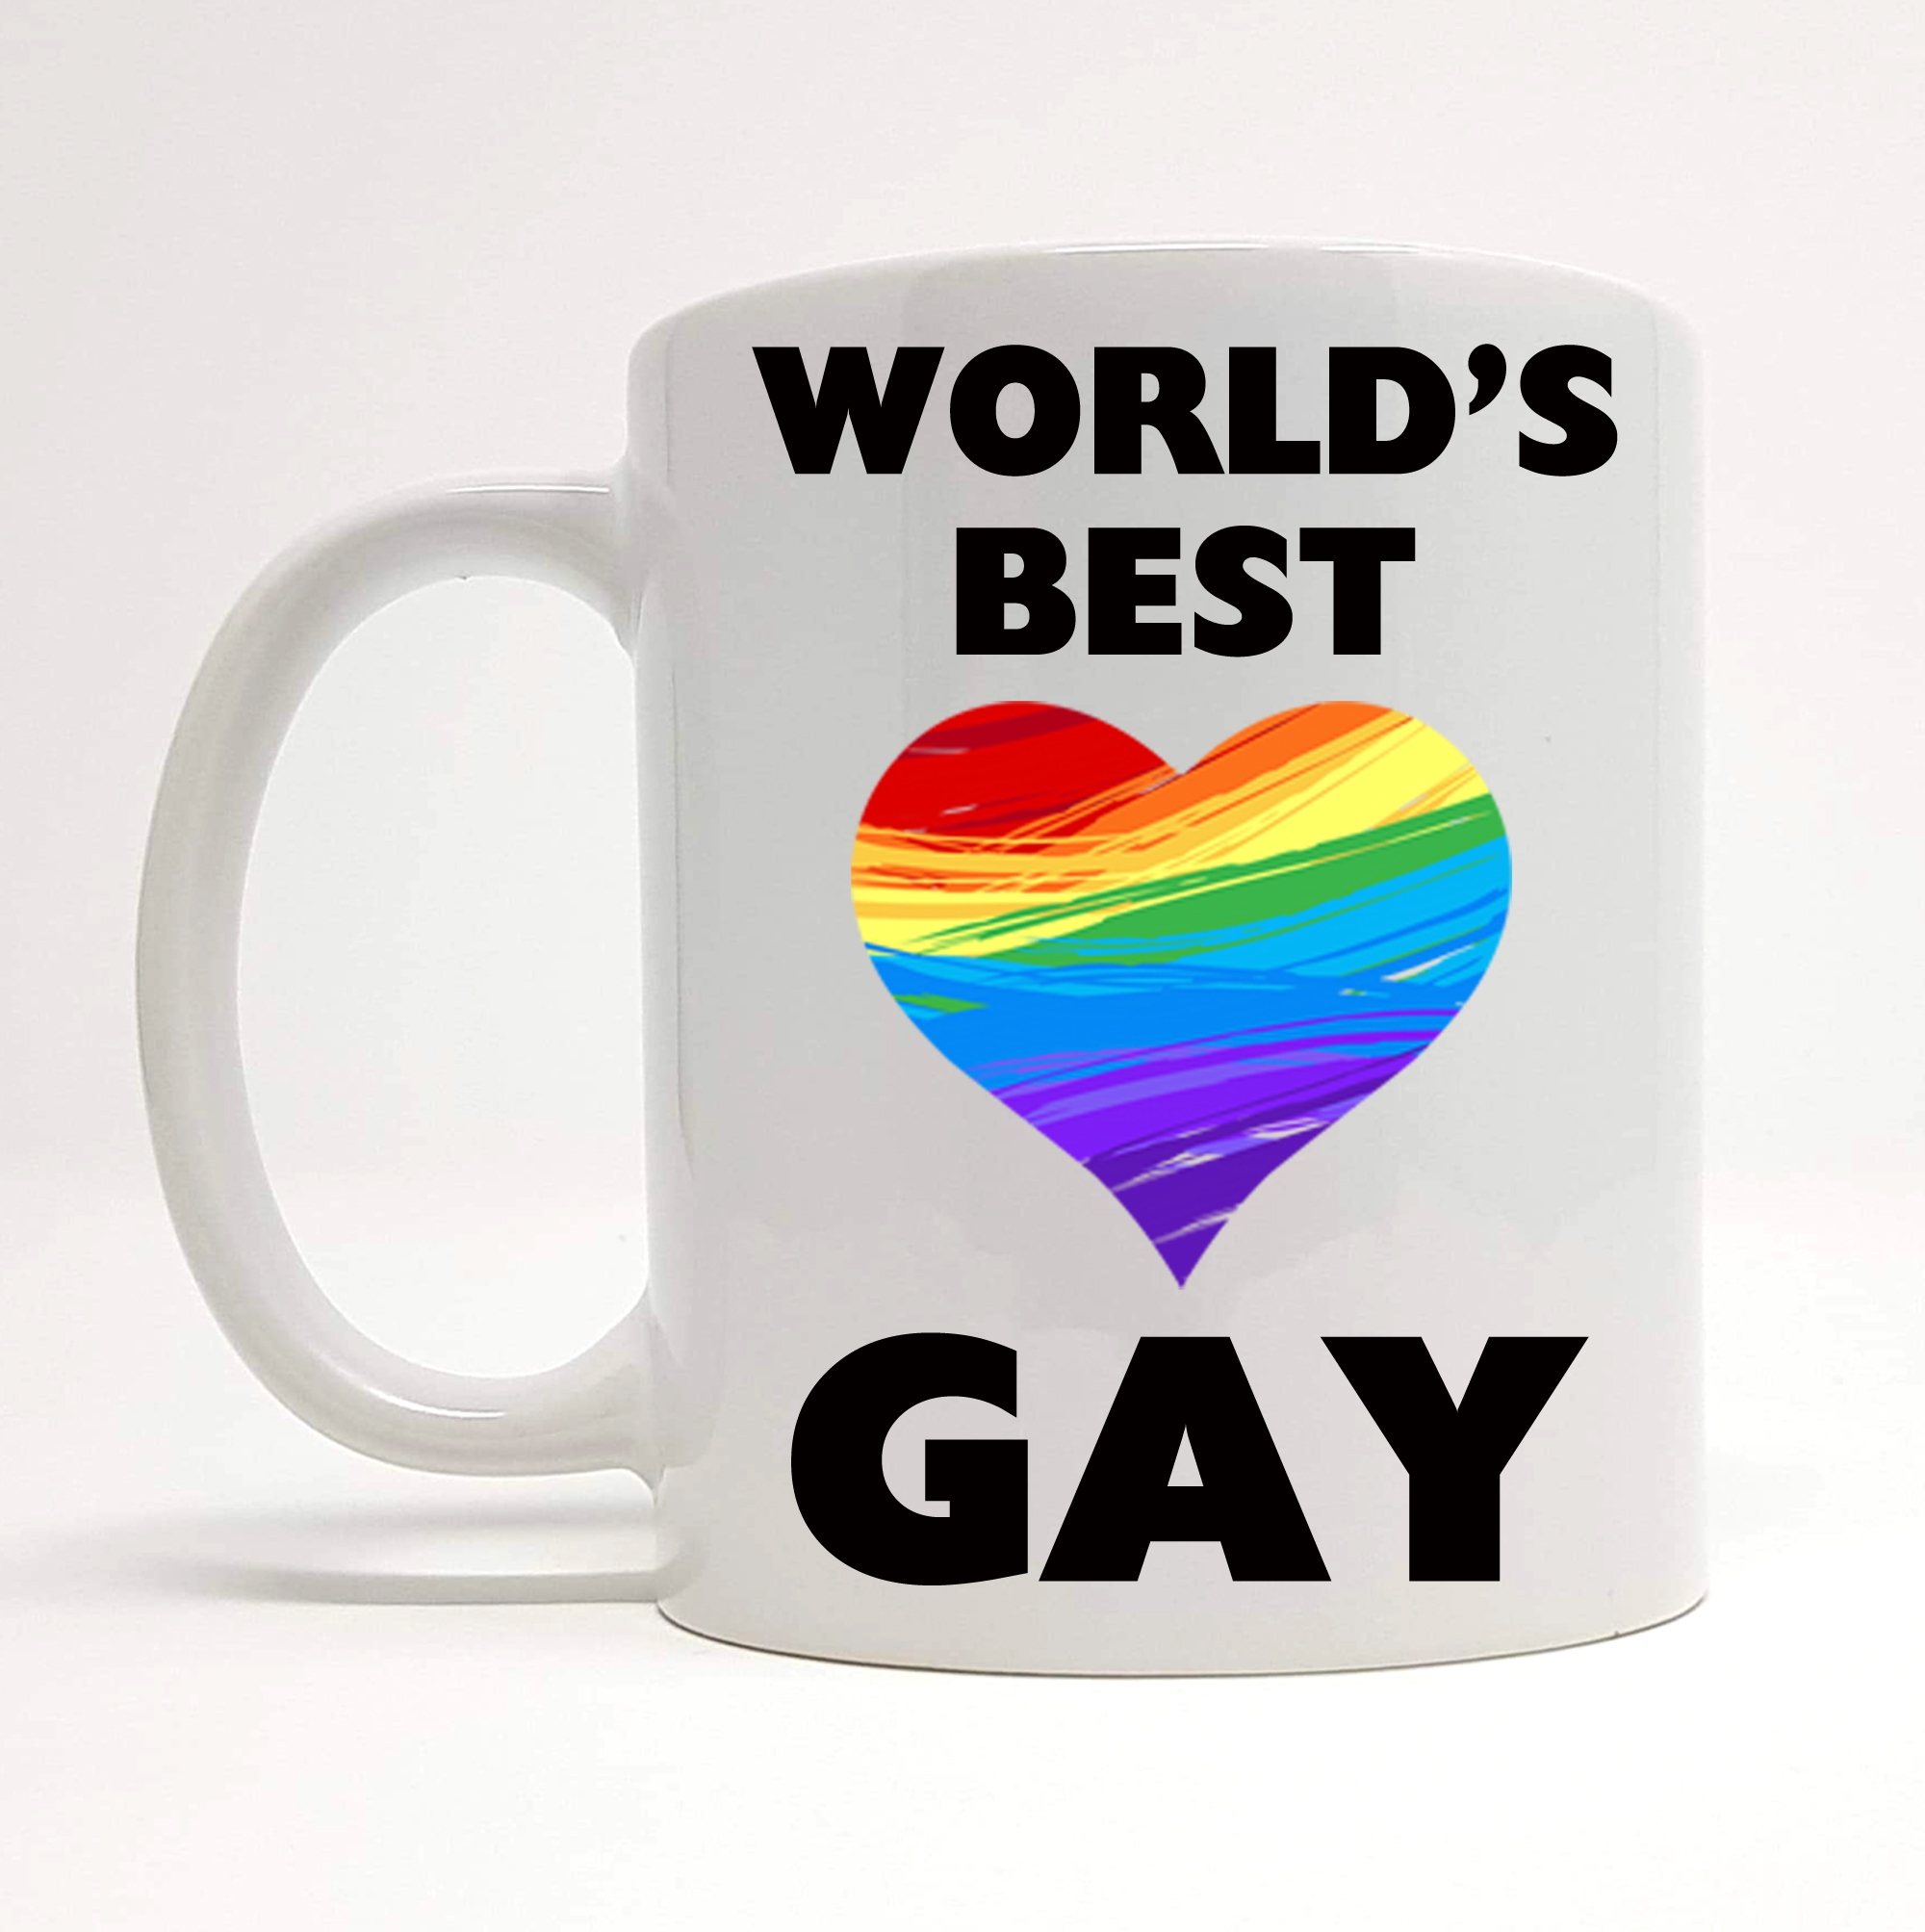 worlds-best-gay-mug